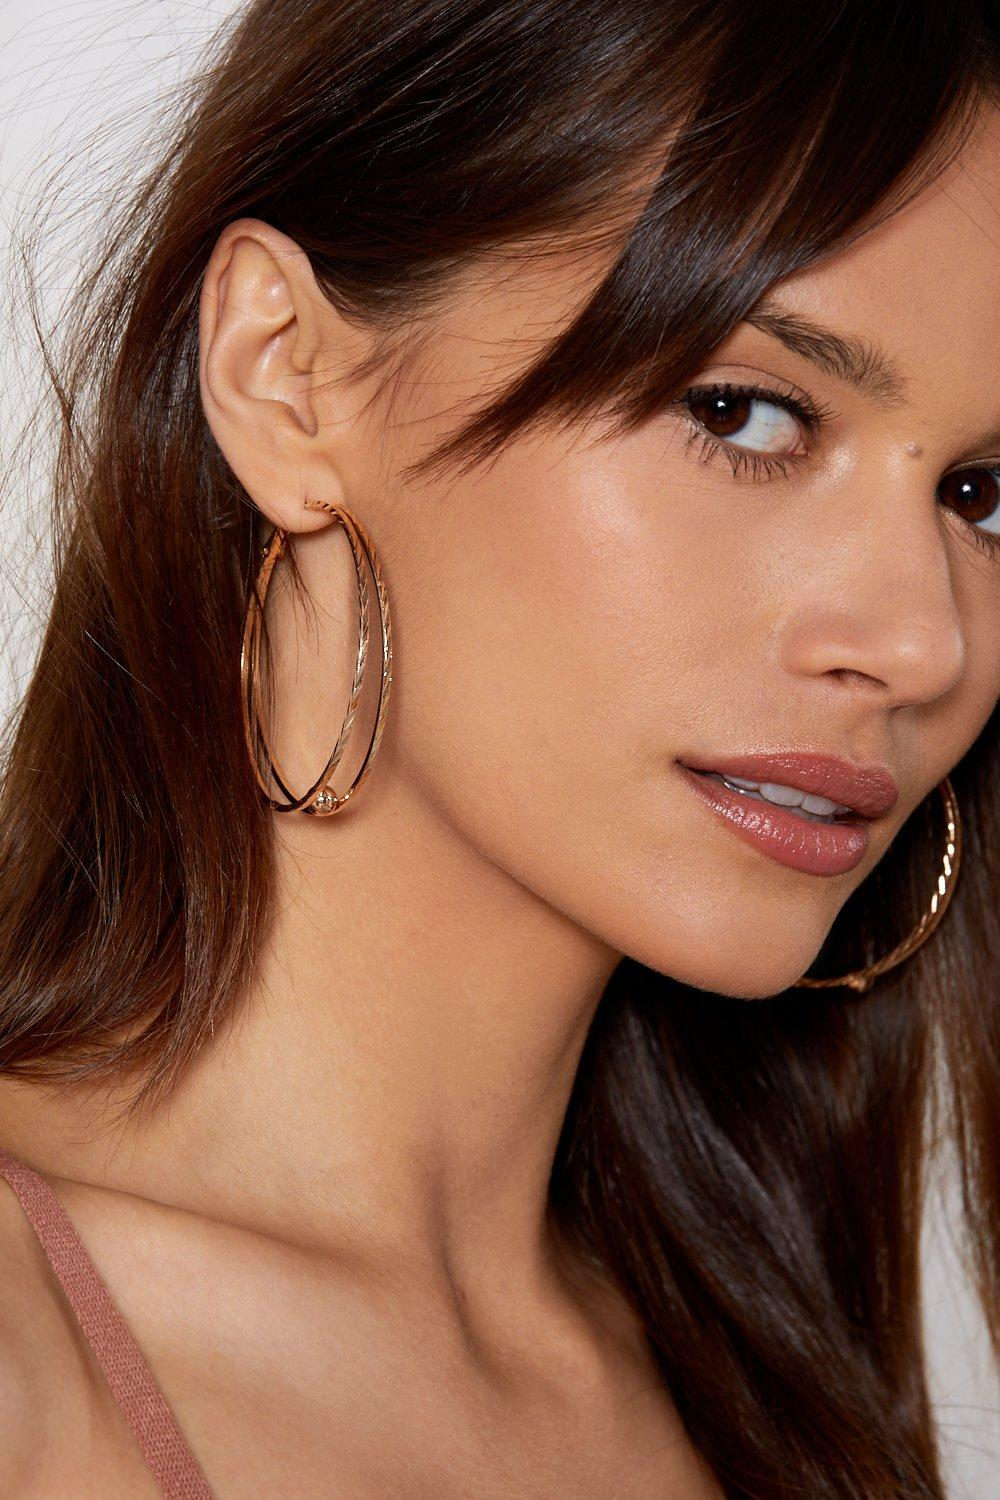 On The Ball Hoop Earrings Shop Clothes At Nasty Gal